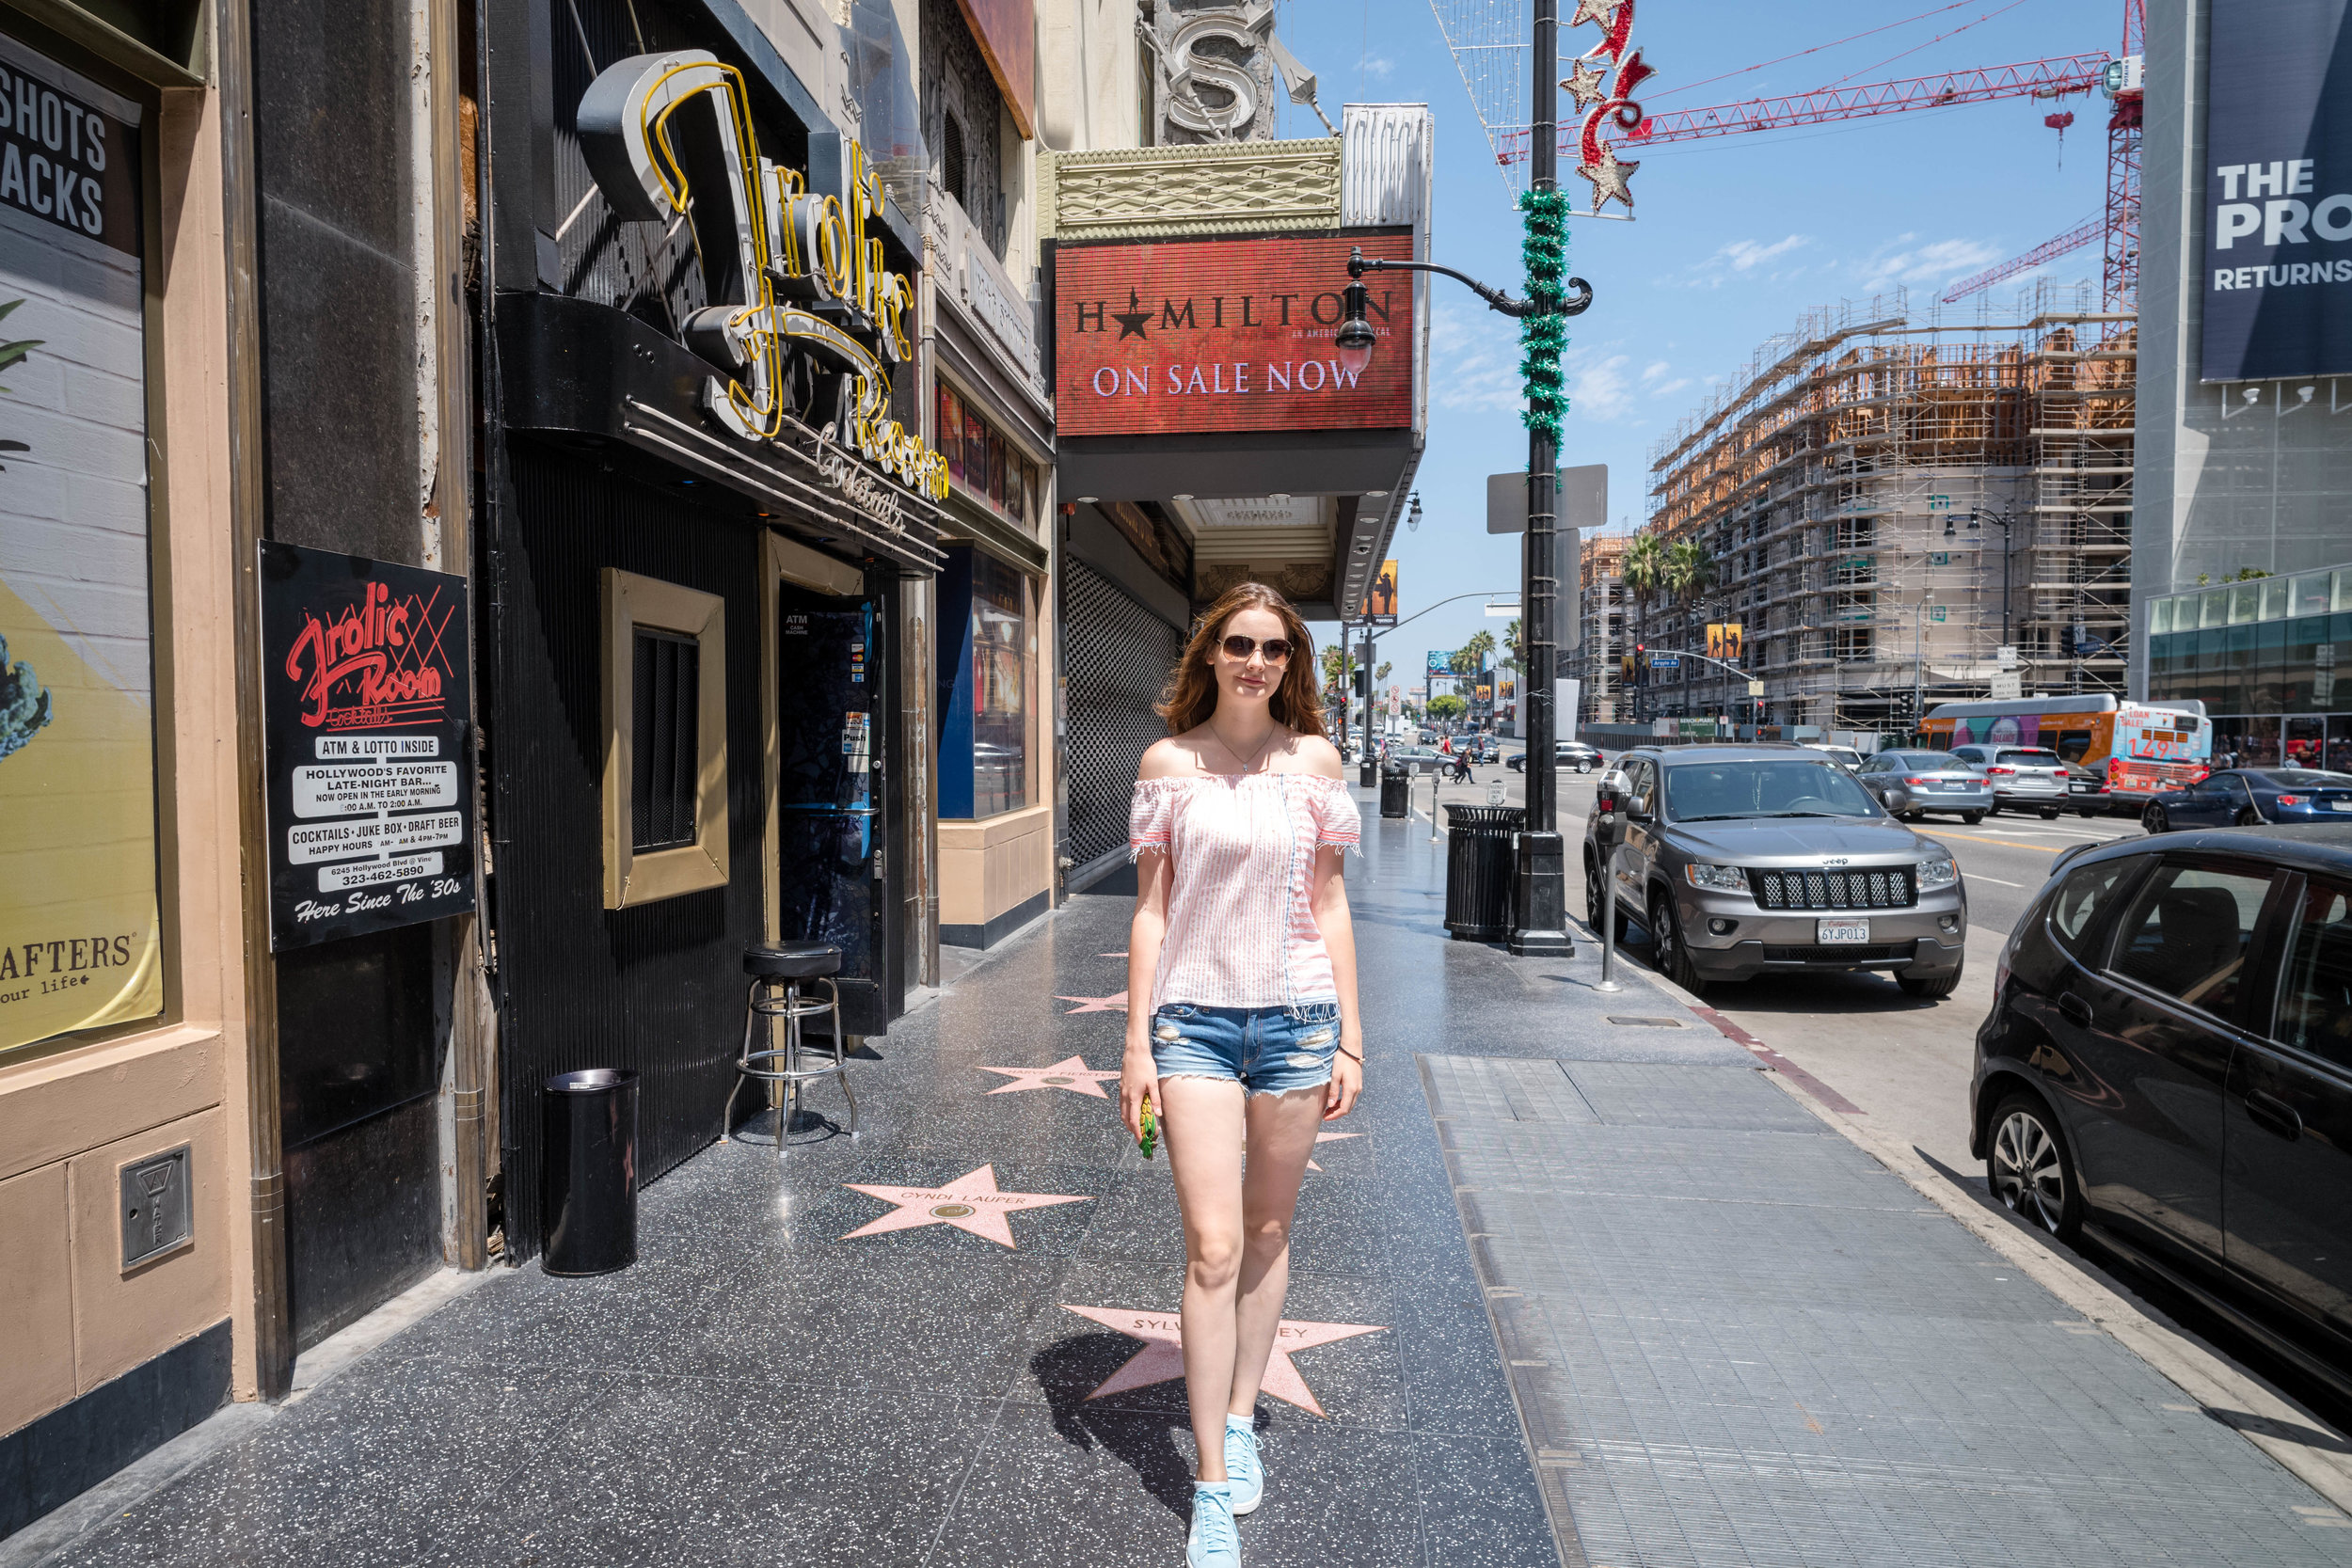 Hollywood Blvd, on the Walk of Fame - Shot at waist level - Leica 21mm f/3.4 Super Elmar ASPH